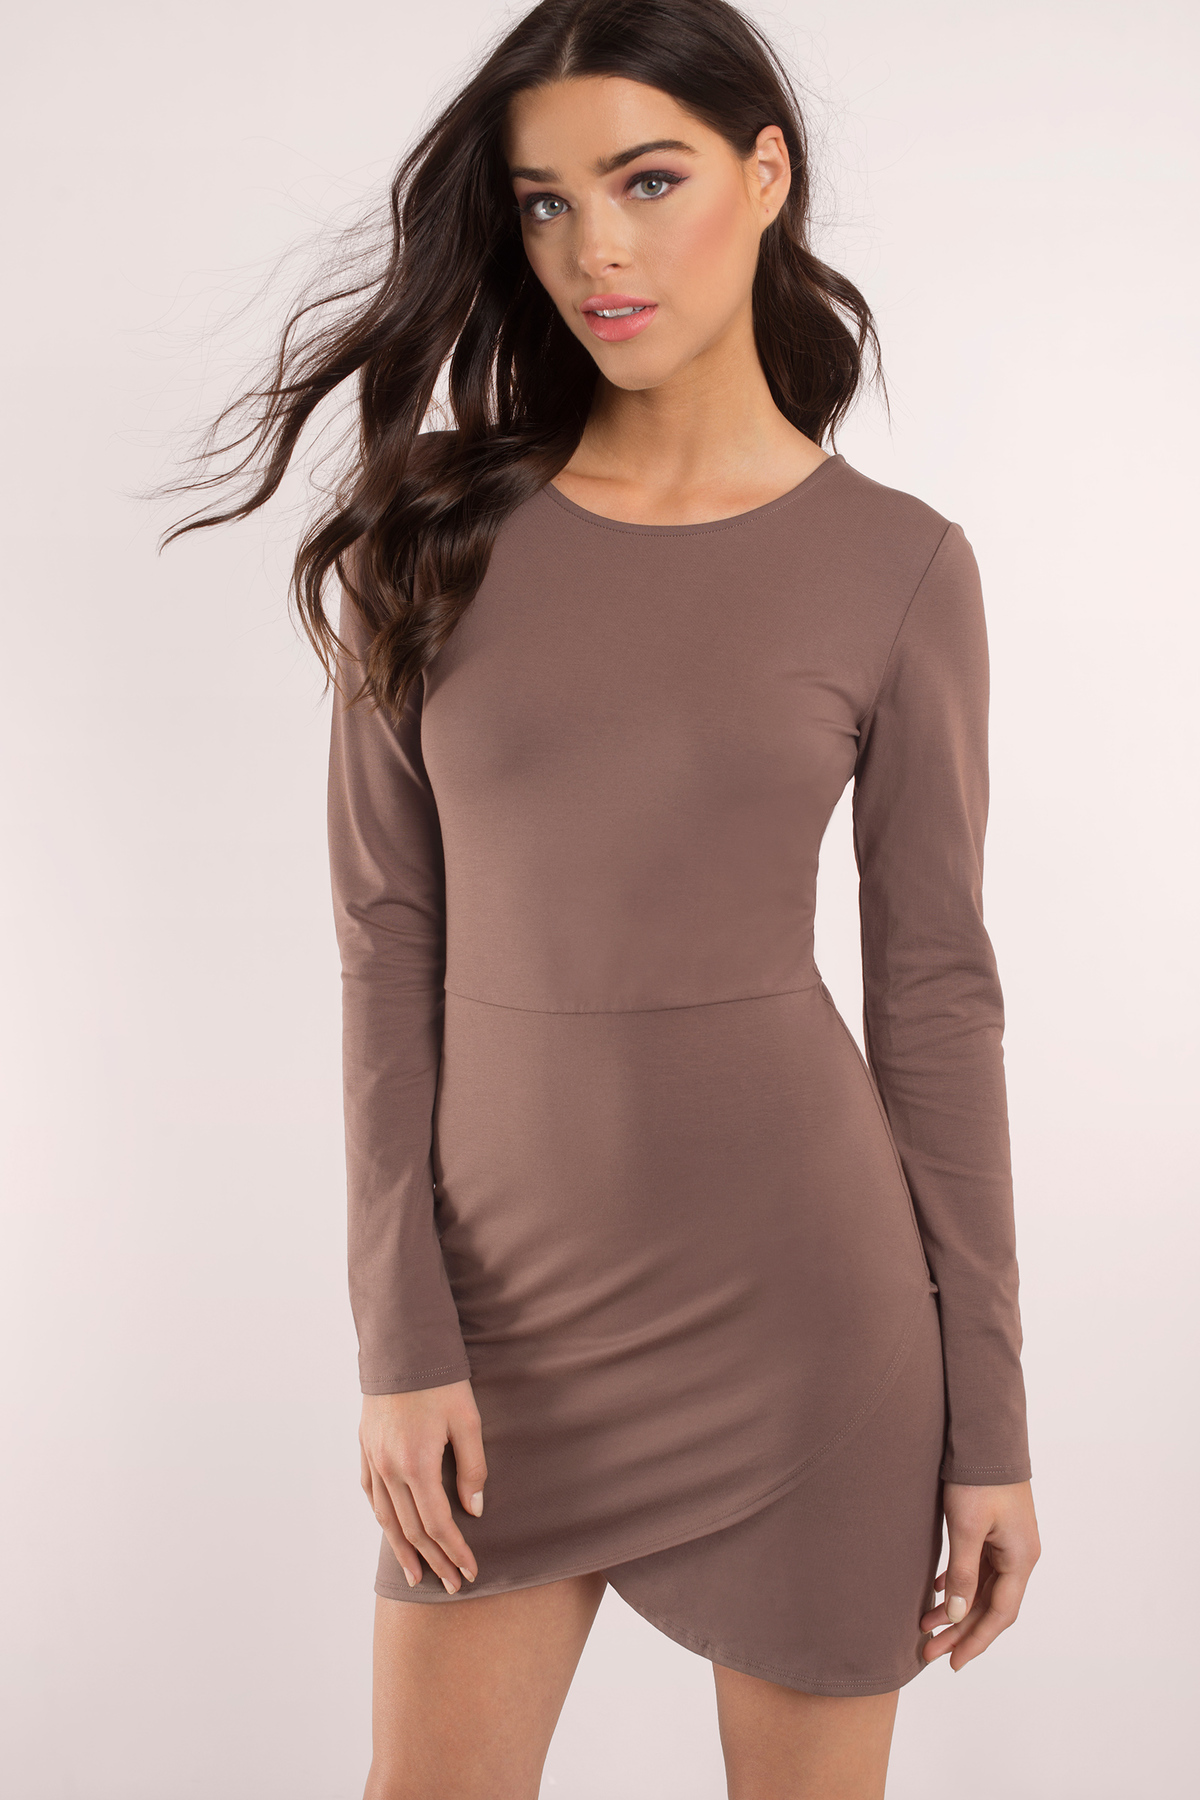 Mocha lace bodycon dress